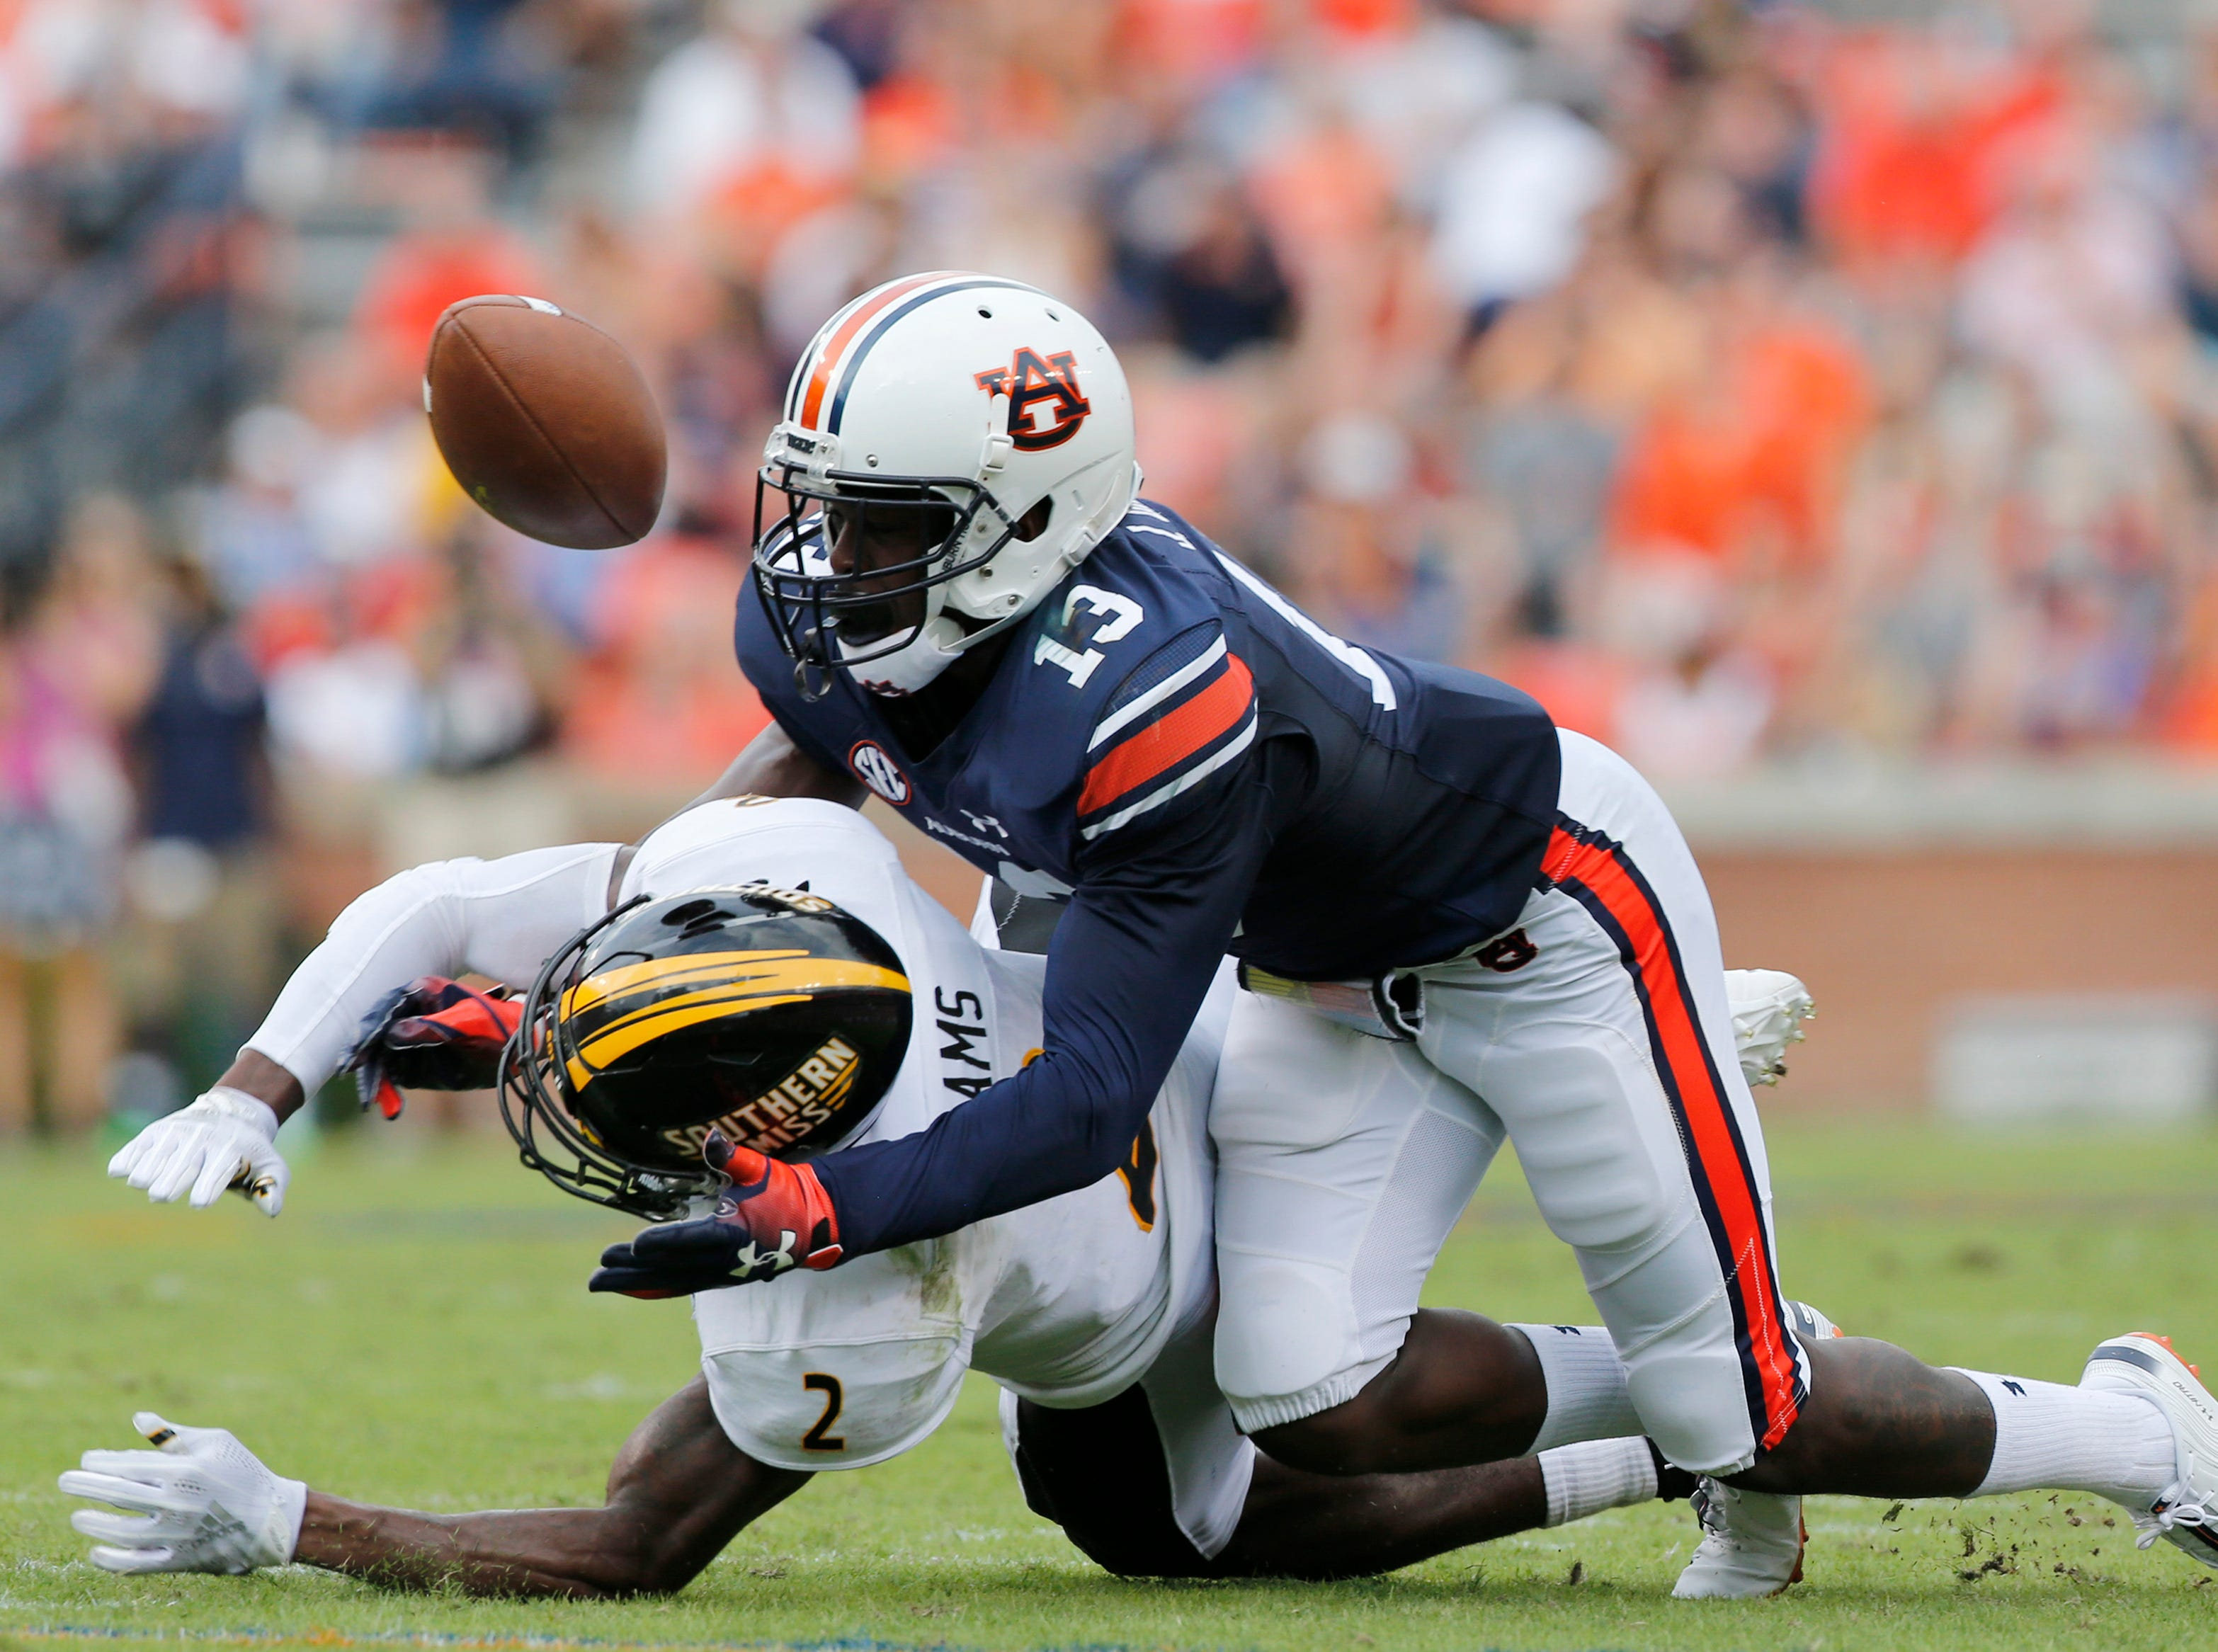 Sep 29, 2018; Auburn, AL, USA; Auburn Tigers defensive back Javaris Davis (13) breaks up a pass intended for Southern Miss Golden Eagles receiver Jaylond Adams (2) during the first quarter at Jordan-Hare Stadium. Mandatory Credit: John Reed-USA TODAY Sports